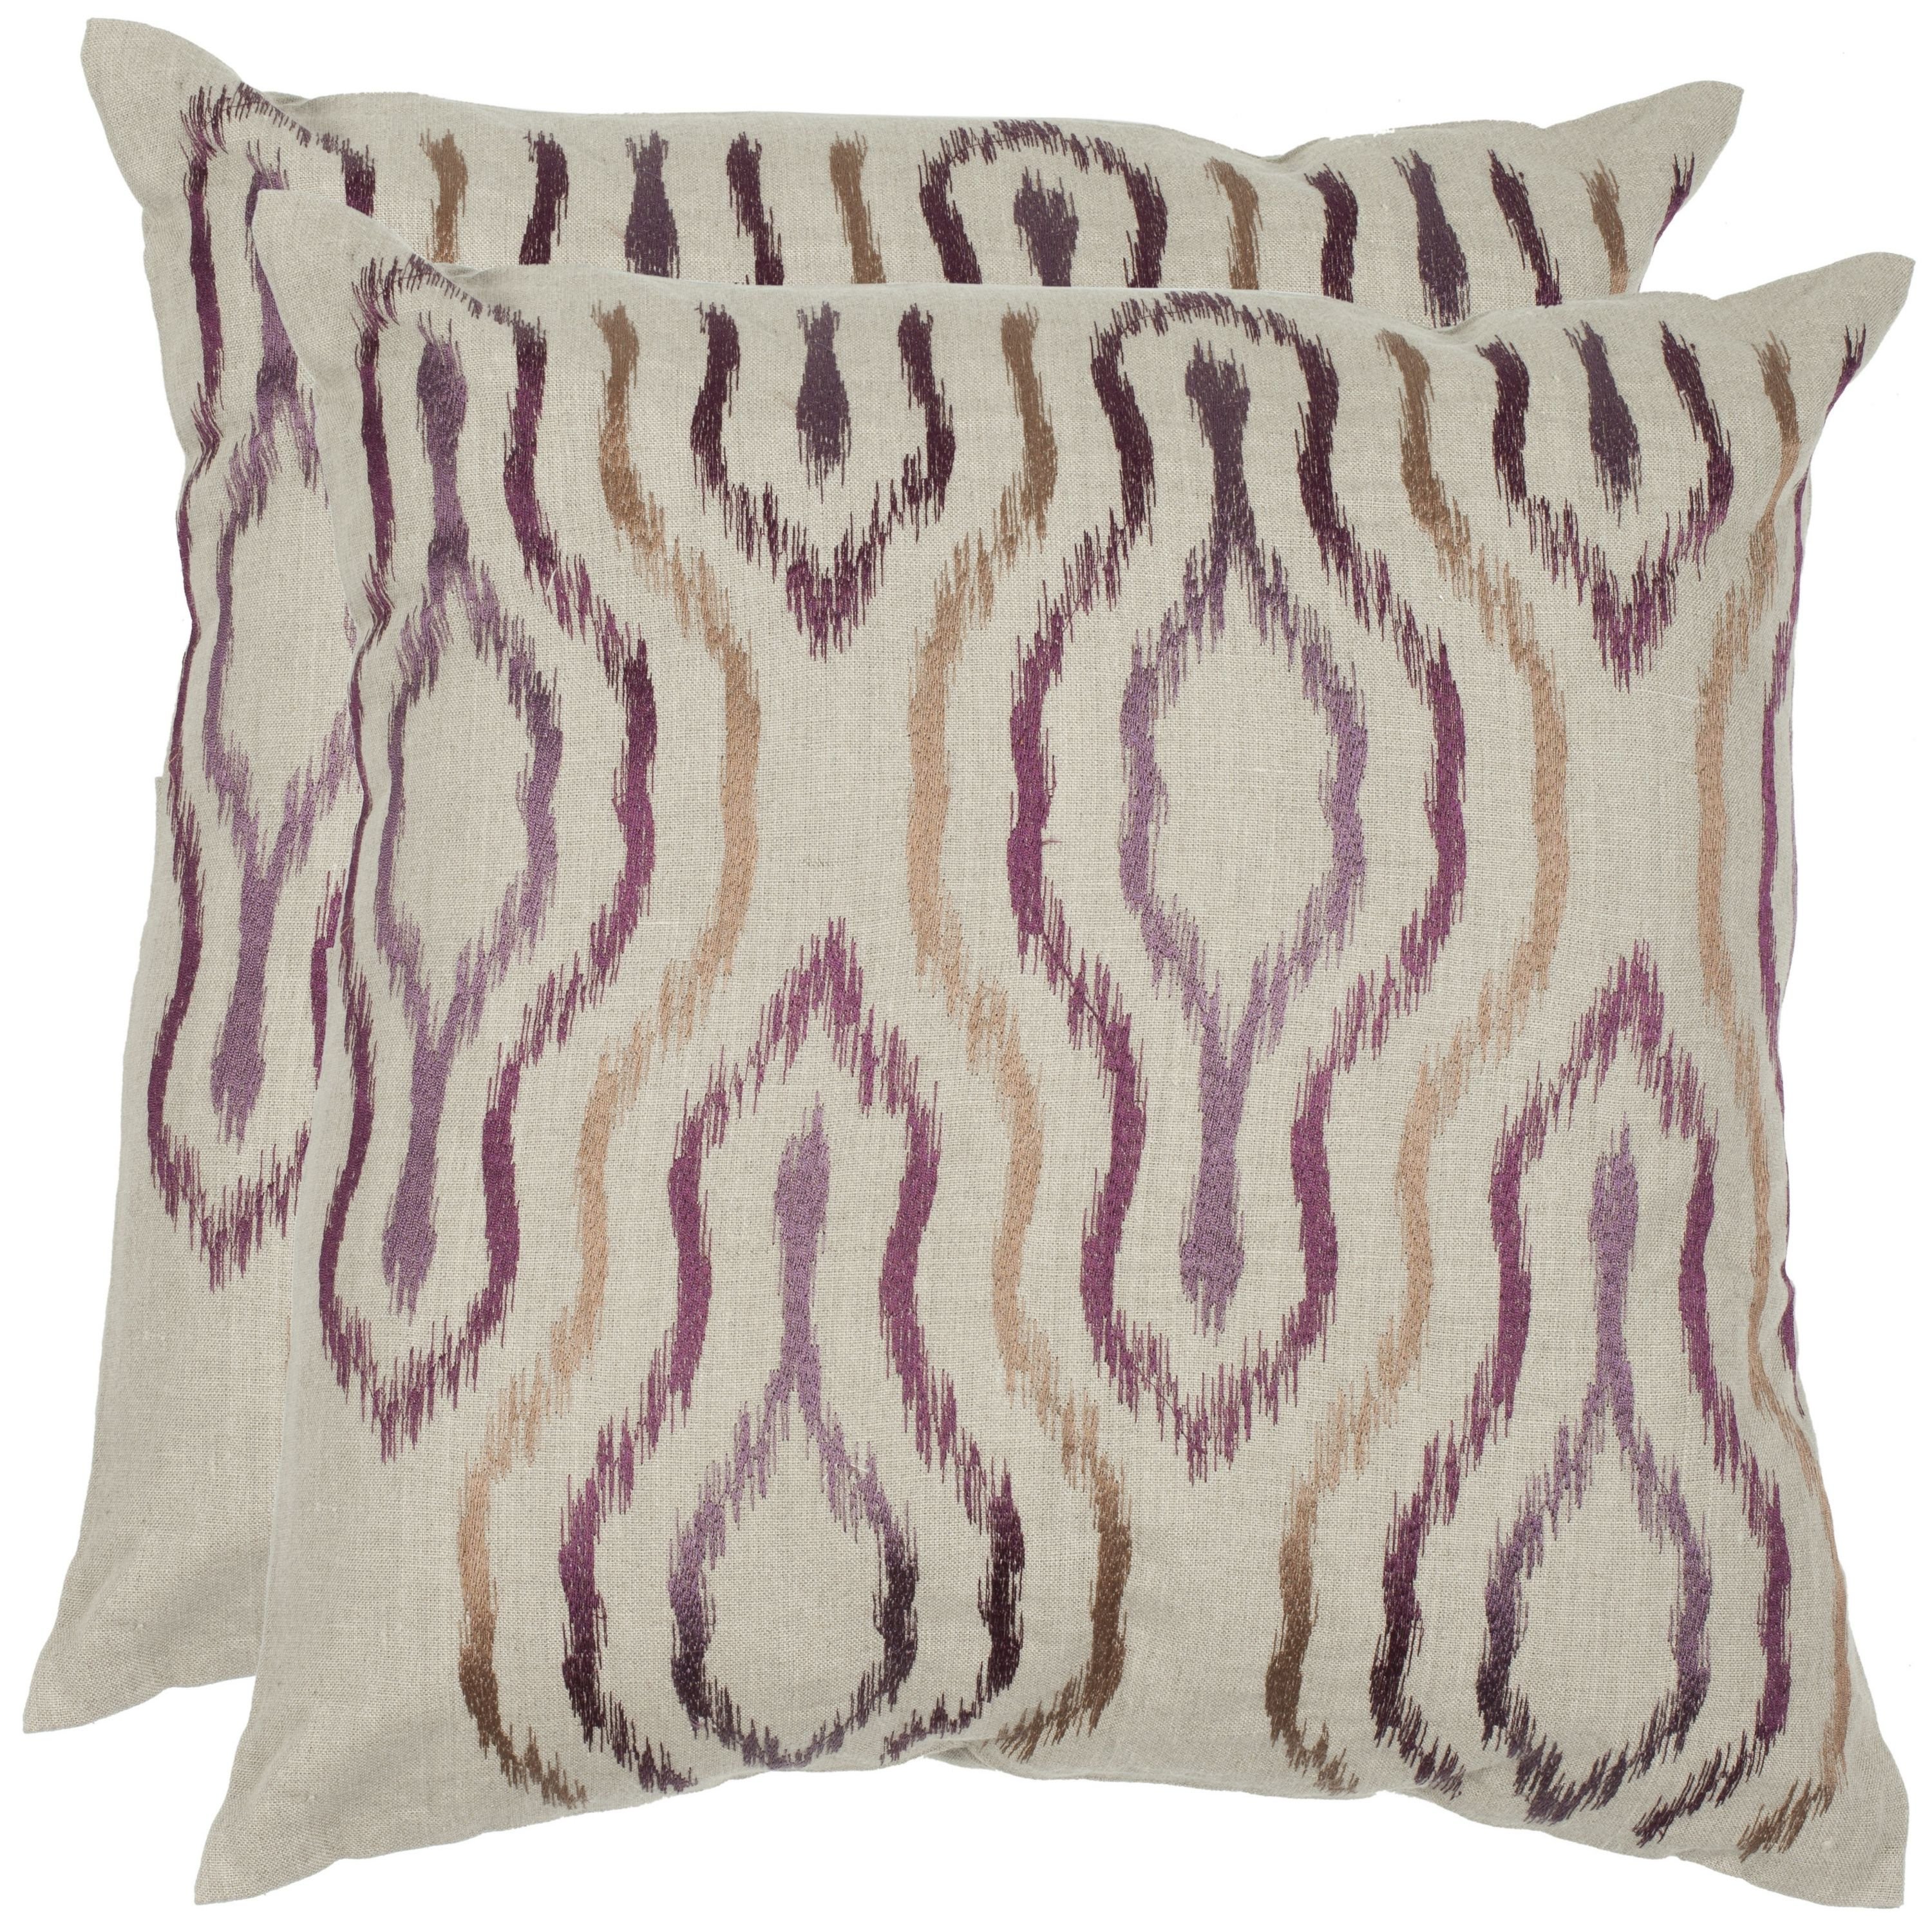 Light and airy, the Quinn accent pillow is brimming with global style.